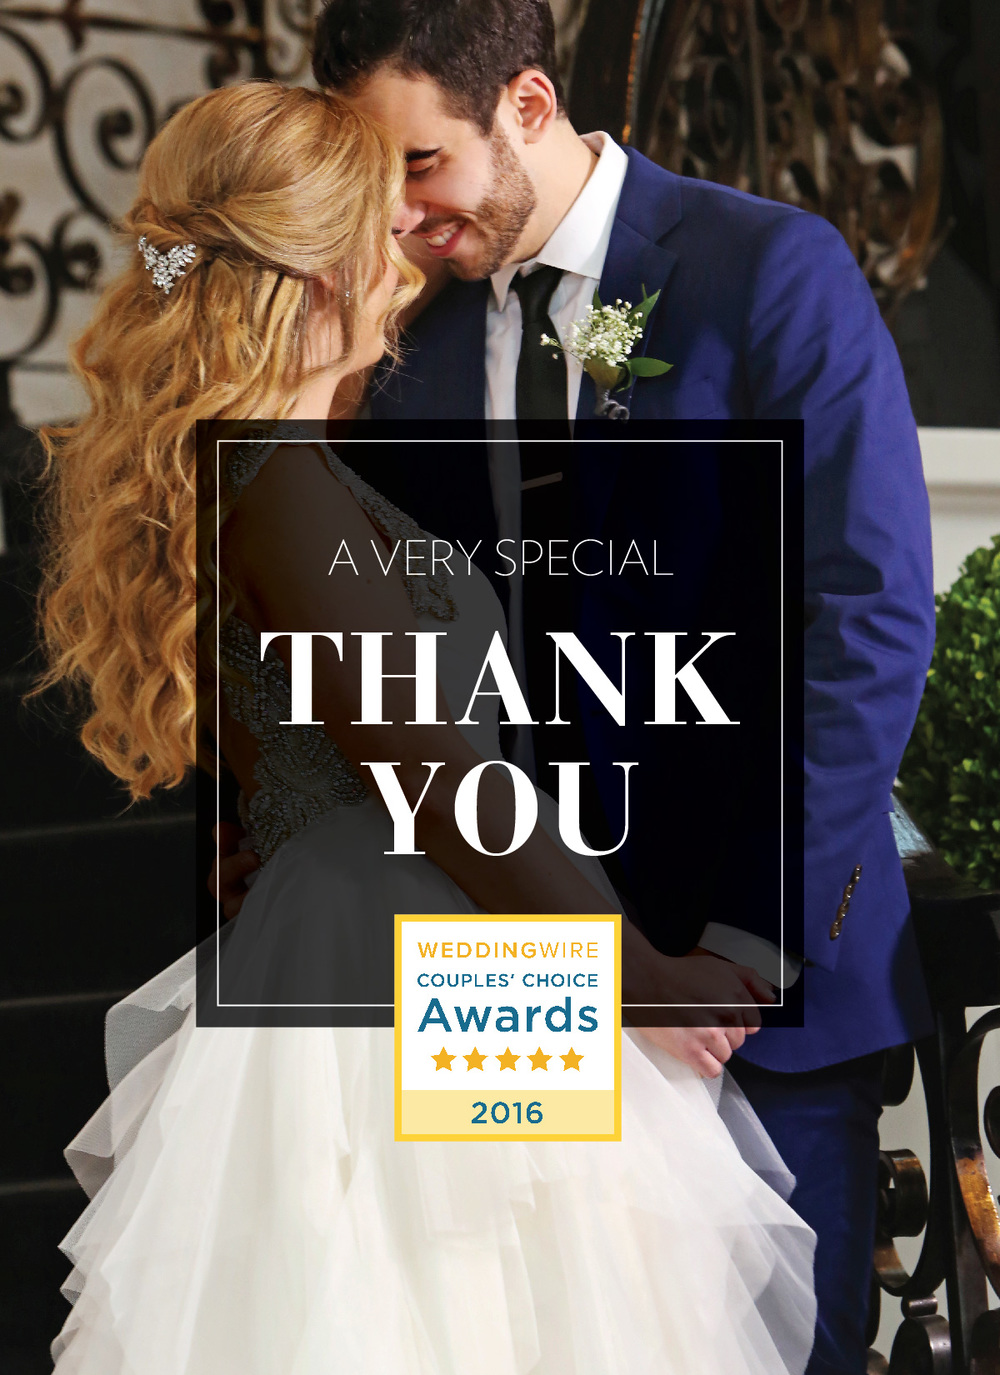 Sebastian Photography Studio WeddingWire Couples' Choice Award 2016